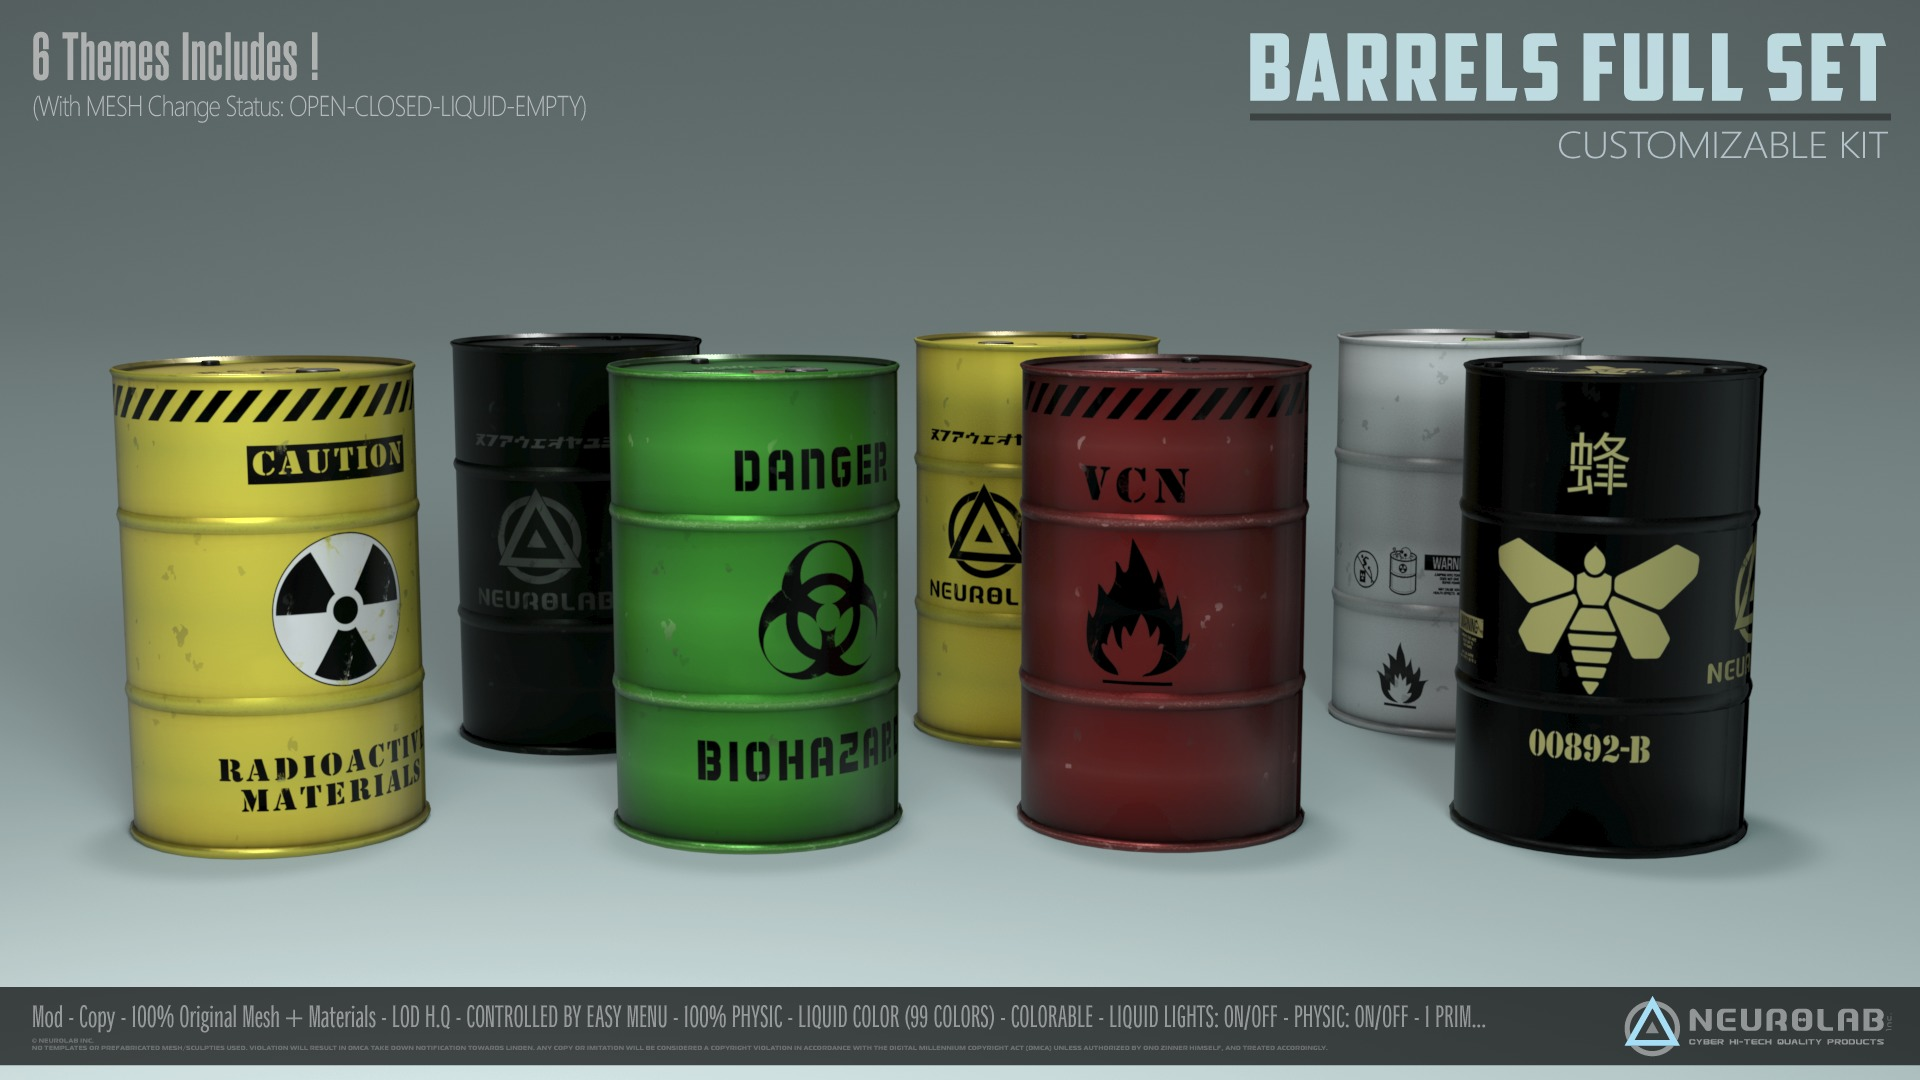 BARRELS FULL SET (CUSTOMIZABLE KIT)